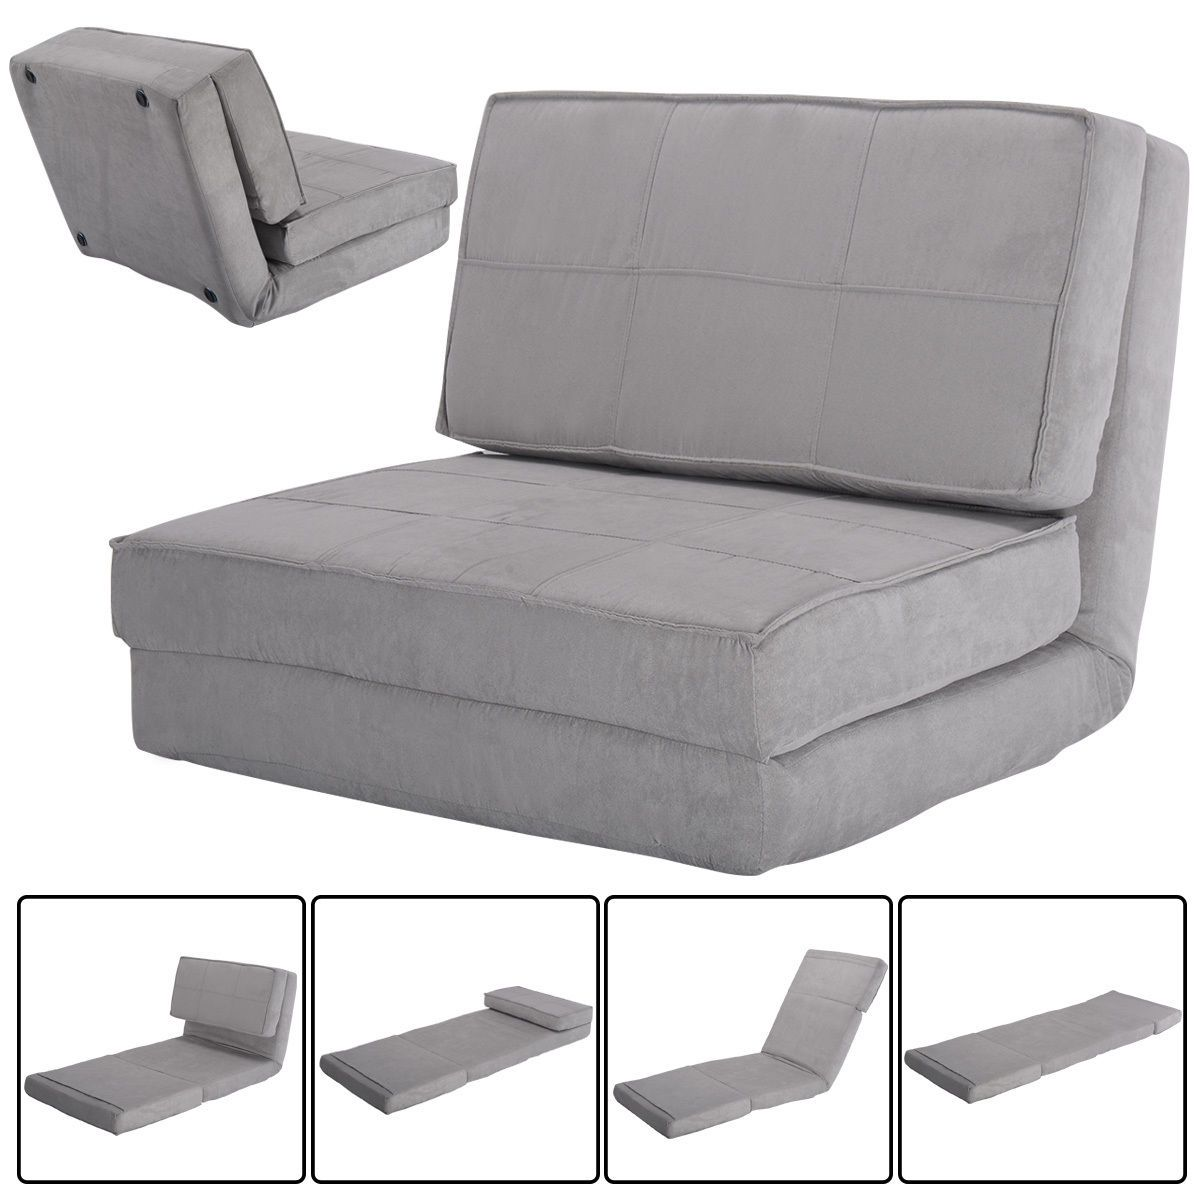 Convertible Lounger Folding Sofa Sleeper Bed | Folding sofa ...